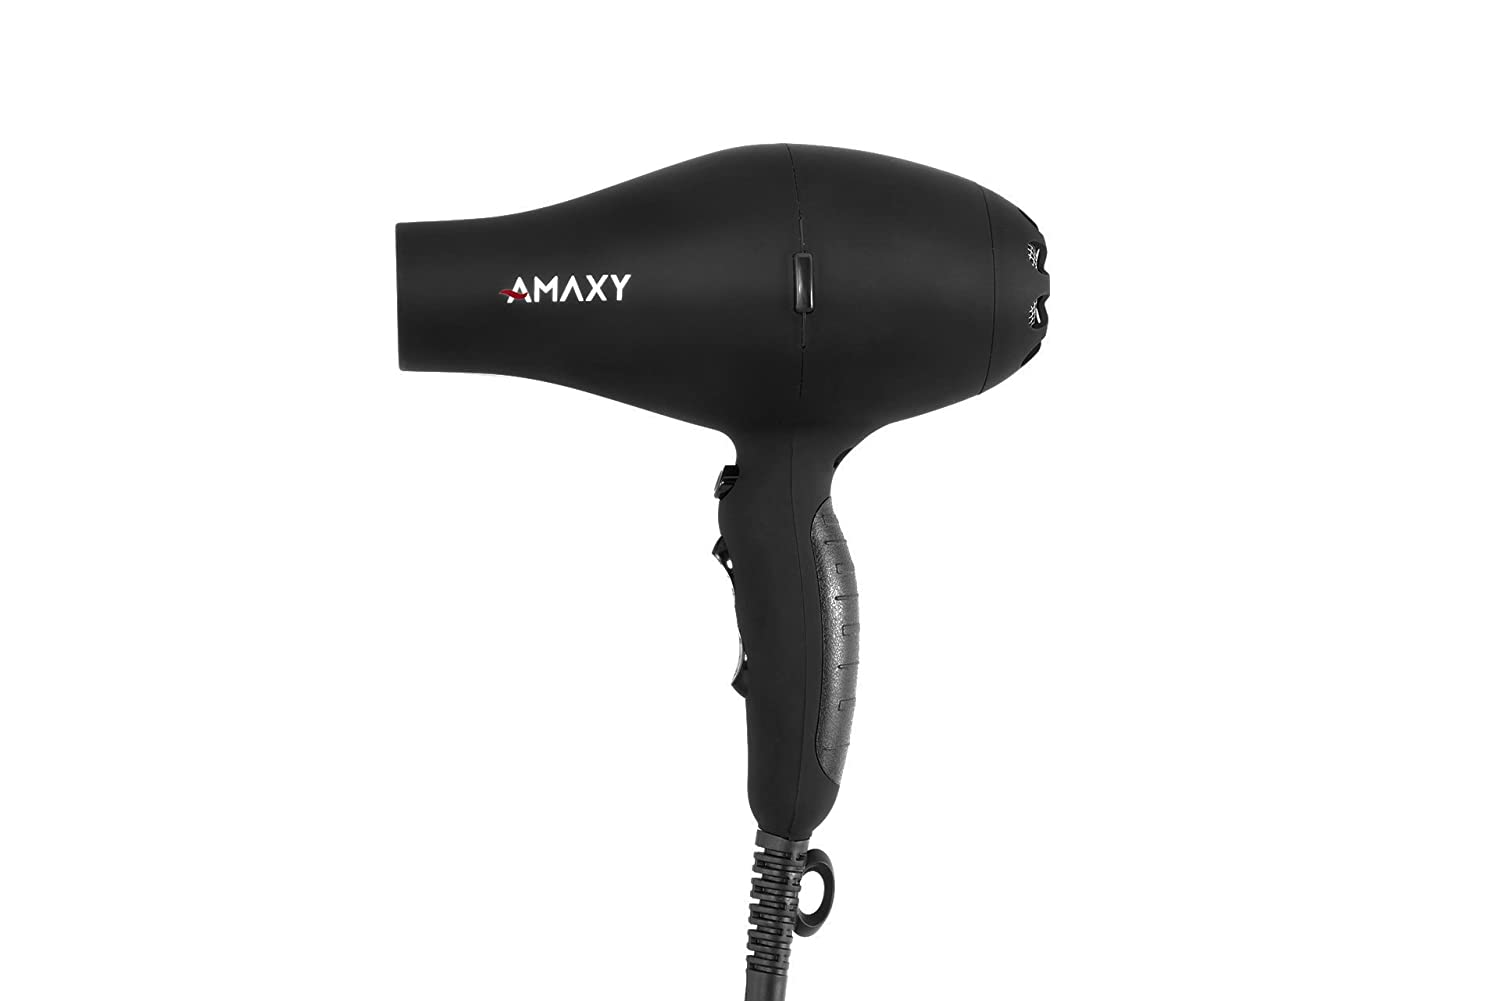 1st Generation Real Infrared Light Professional Hair Dryer With Patented Honeycomb Ceramic Therapy – Prevent Hair Loss Overheating – Heal Damaged Hair – Frizz Free – More Shine – Volume – Smoother